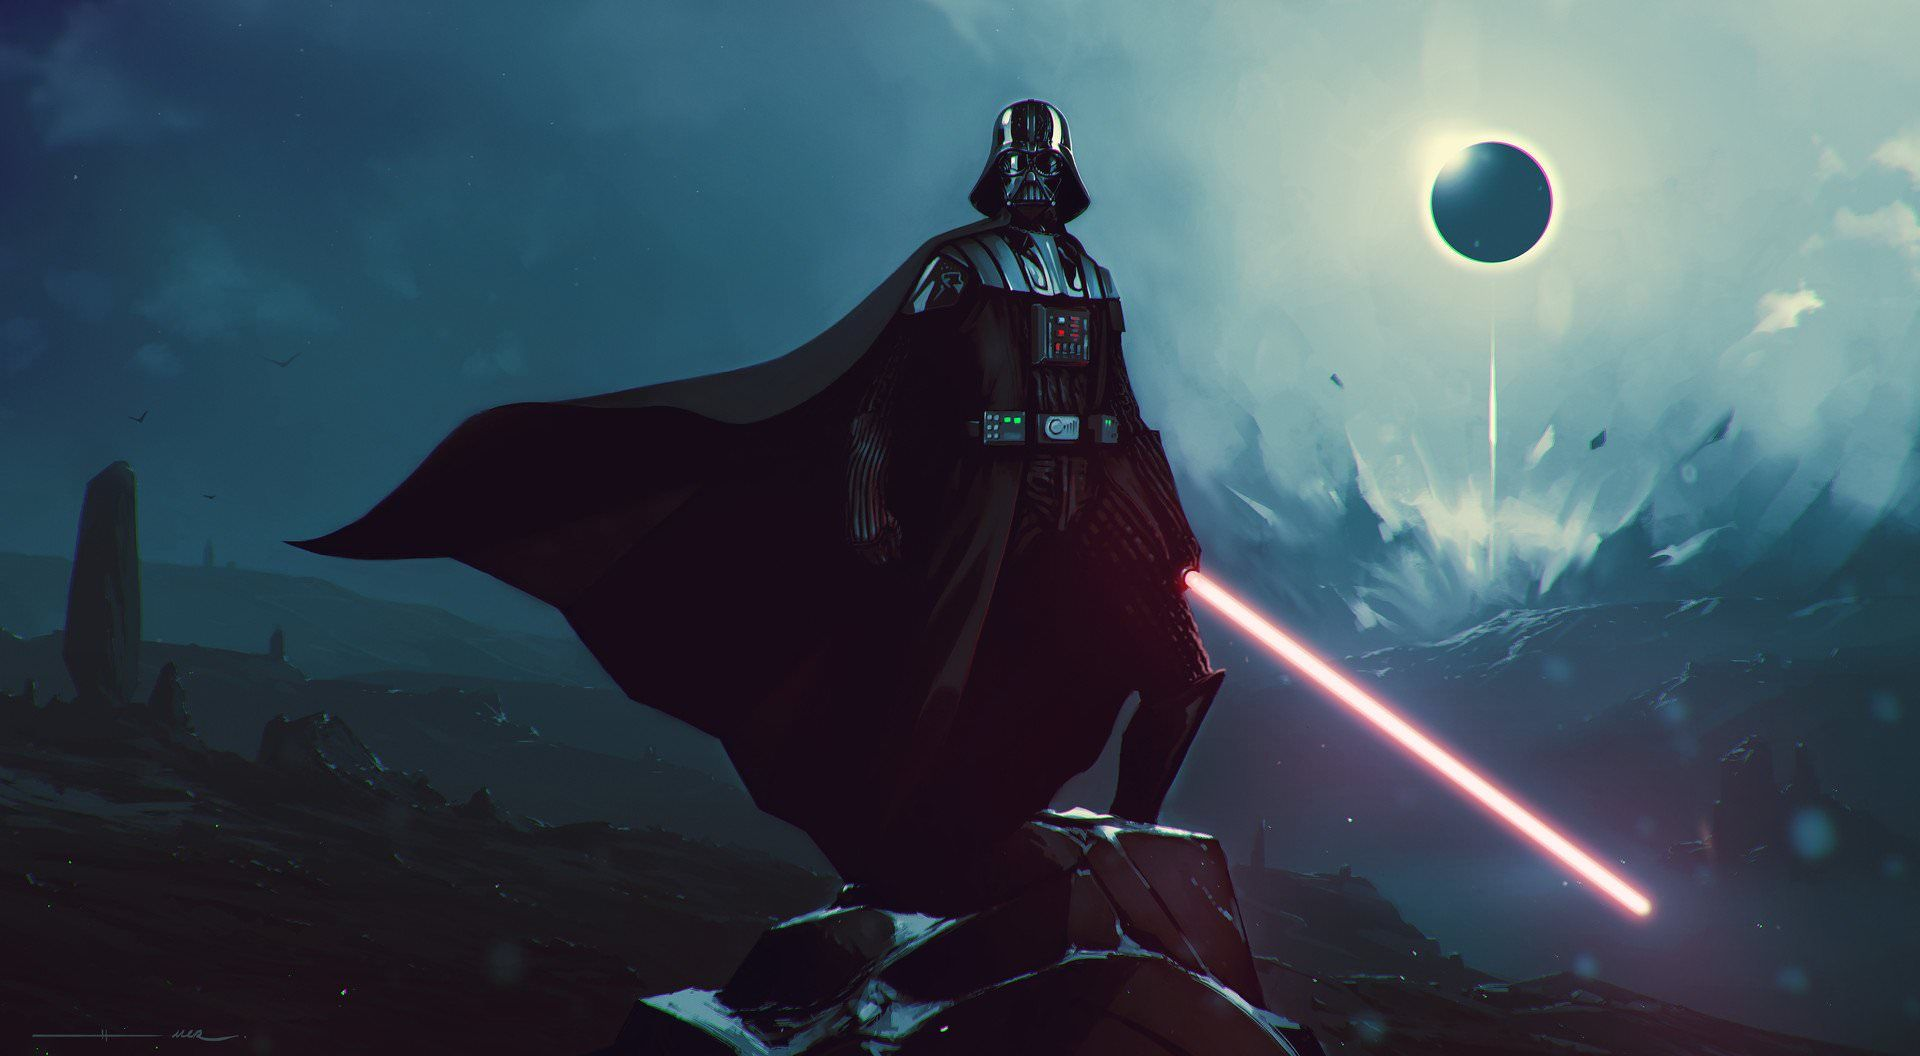 Of My Favorite Star Wars Wallpapers X Album On Imgur Darth Vader Hd Bilder Hintergrundbilder